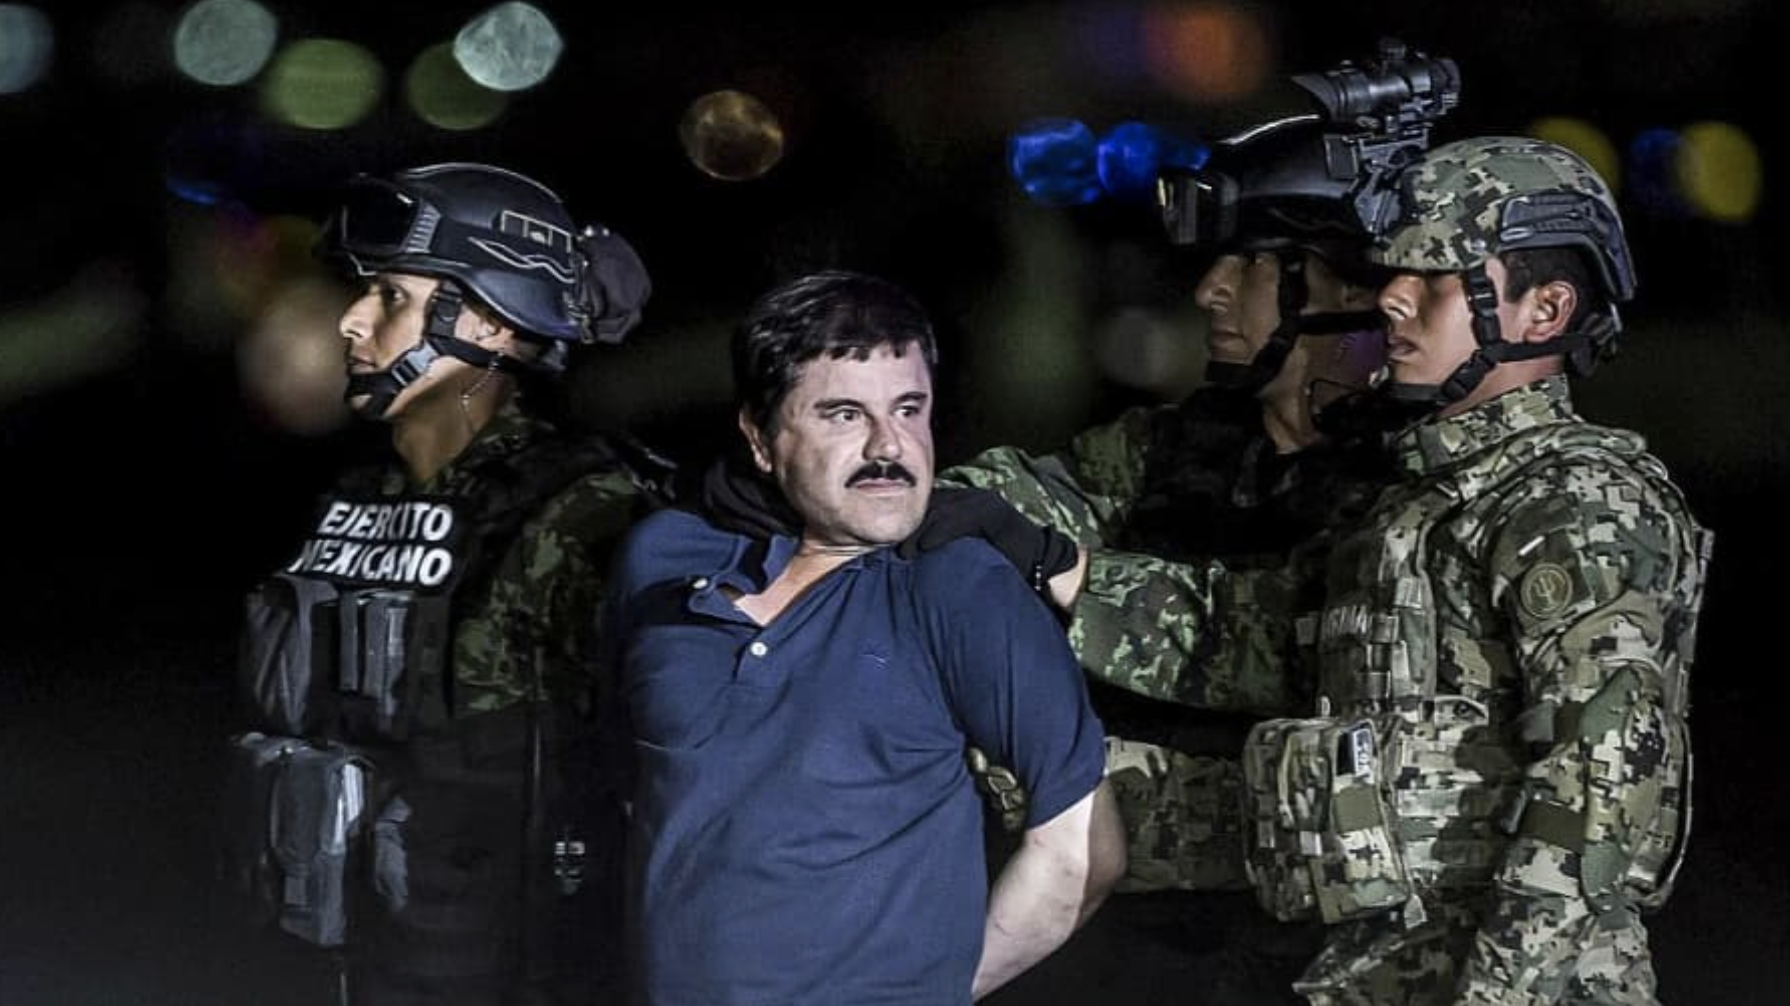 El Chapo and the army (Translation)